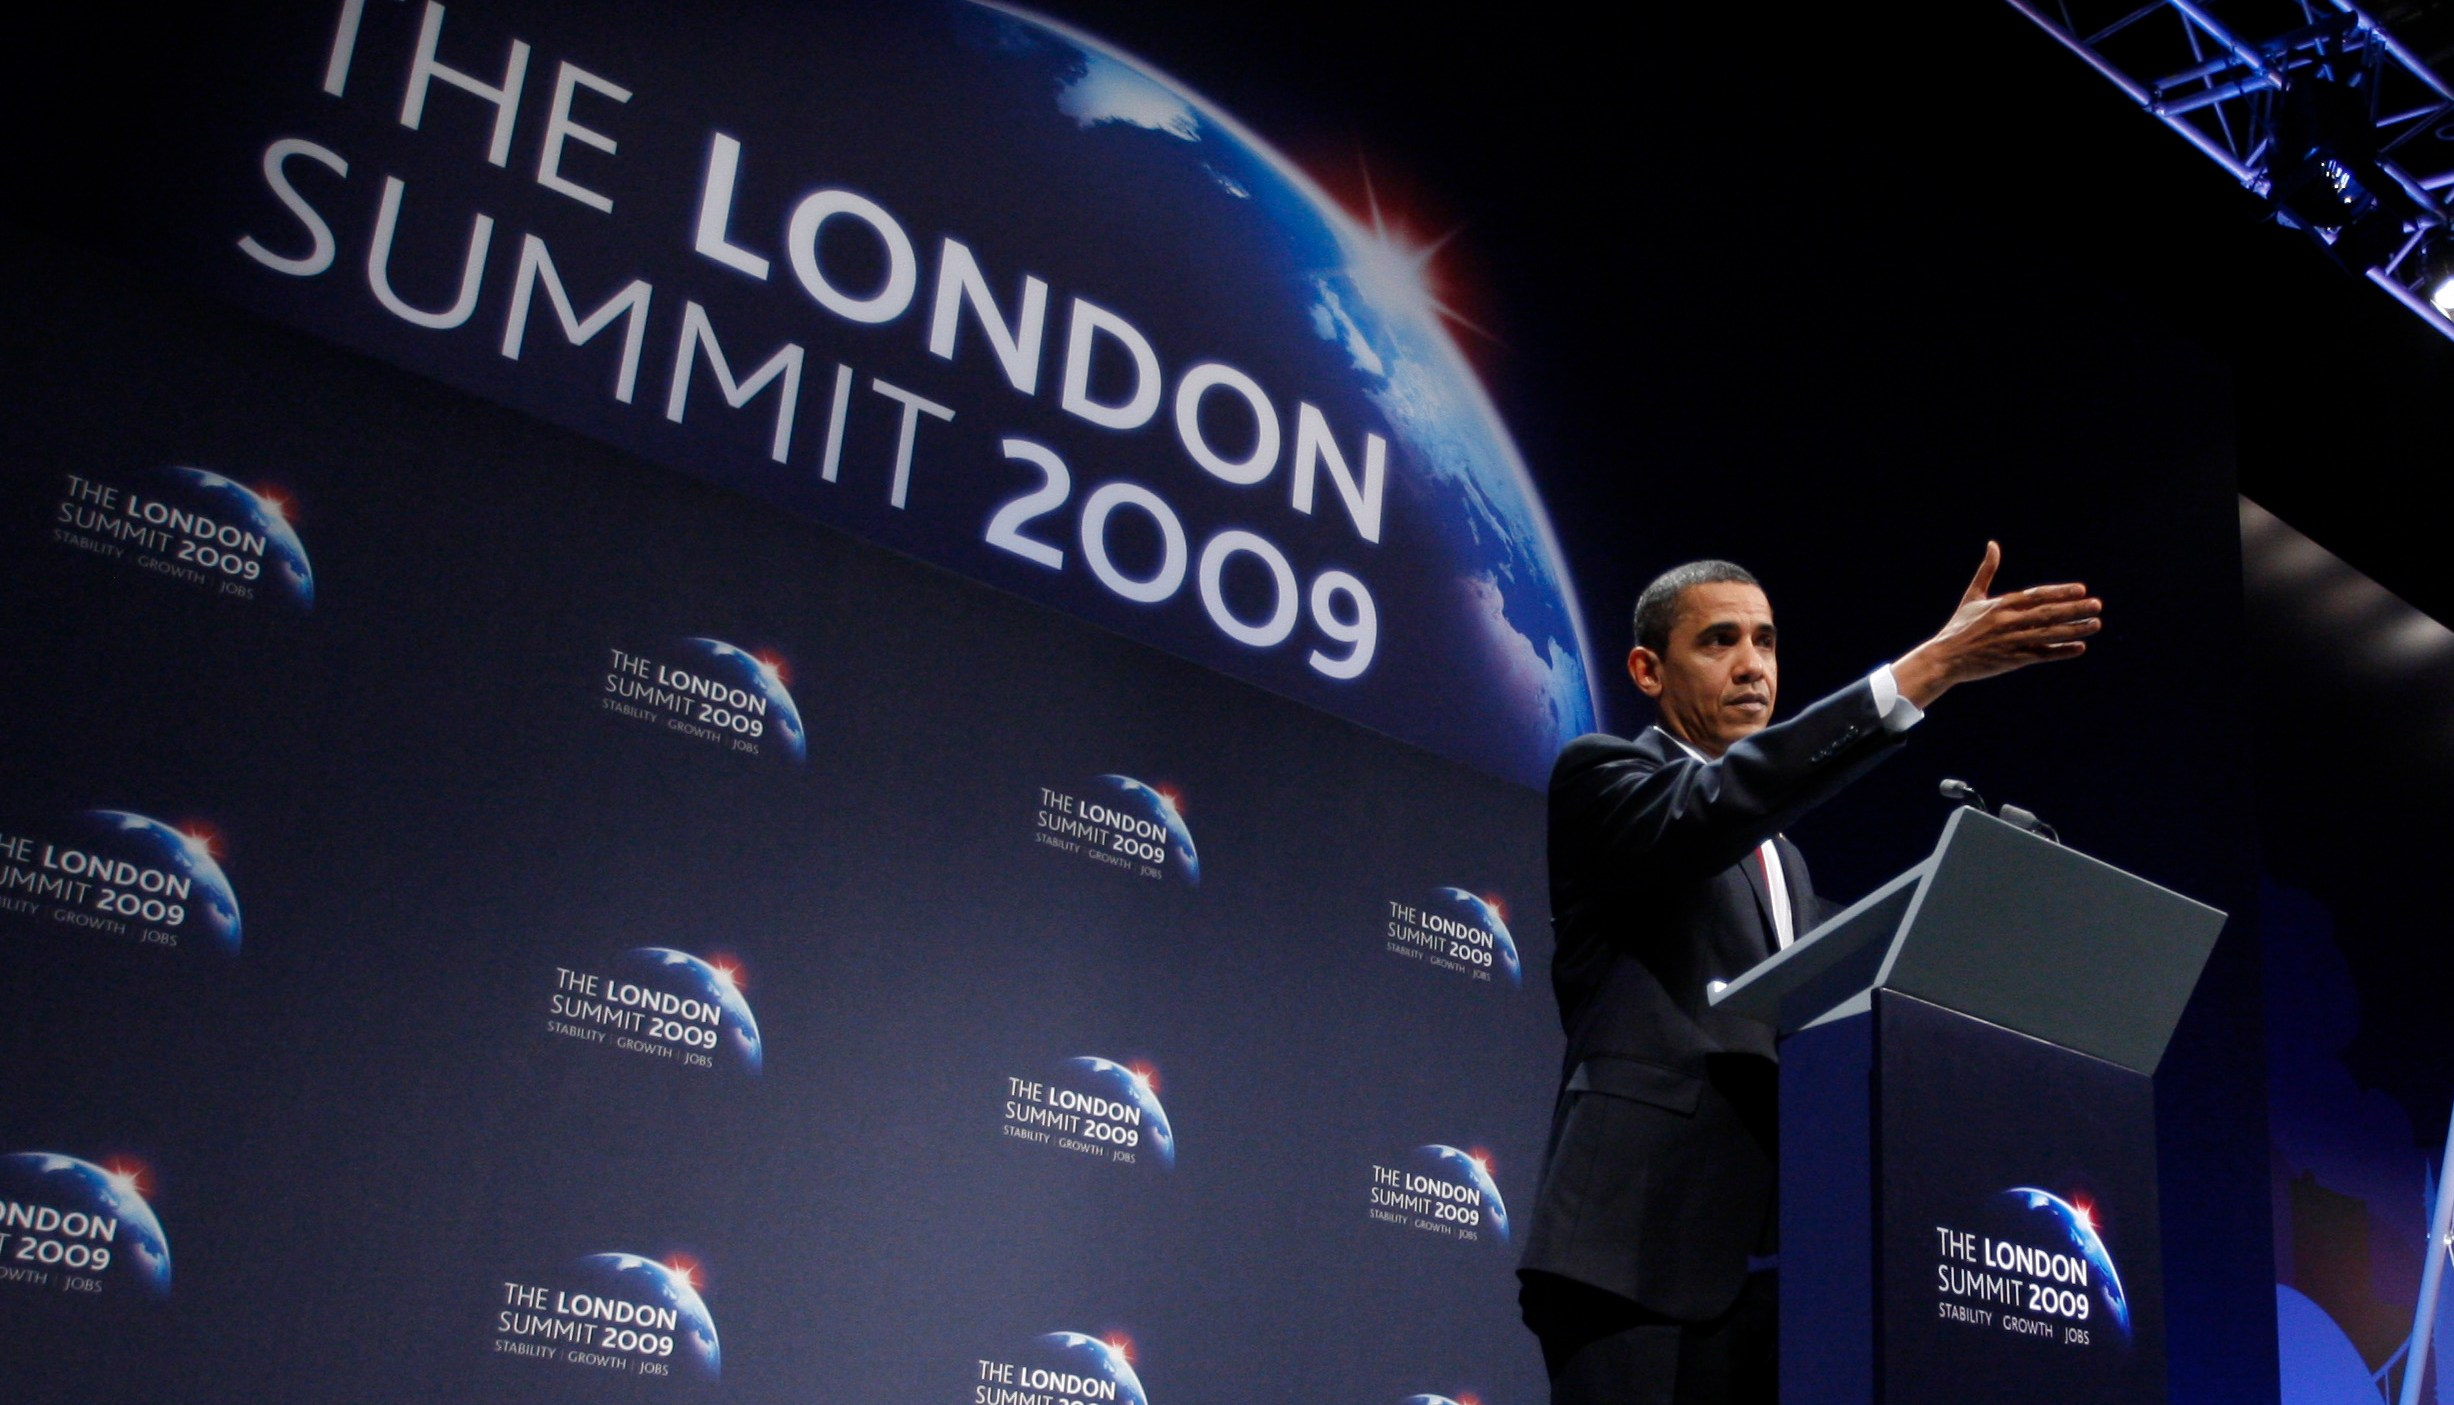 U.S. President Barack Obama speaks during a news conference at the G20 Summit in London, April 2, 2009.   REUTERS/Jason Reed     (BRITAIN POLITICS BUSINESS) - GM1E5430A1R01